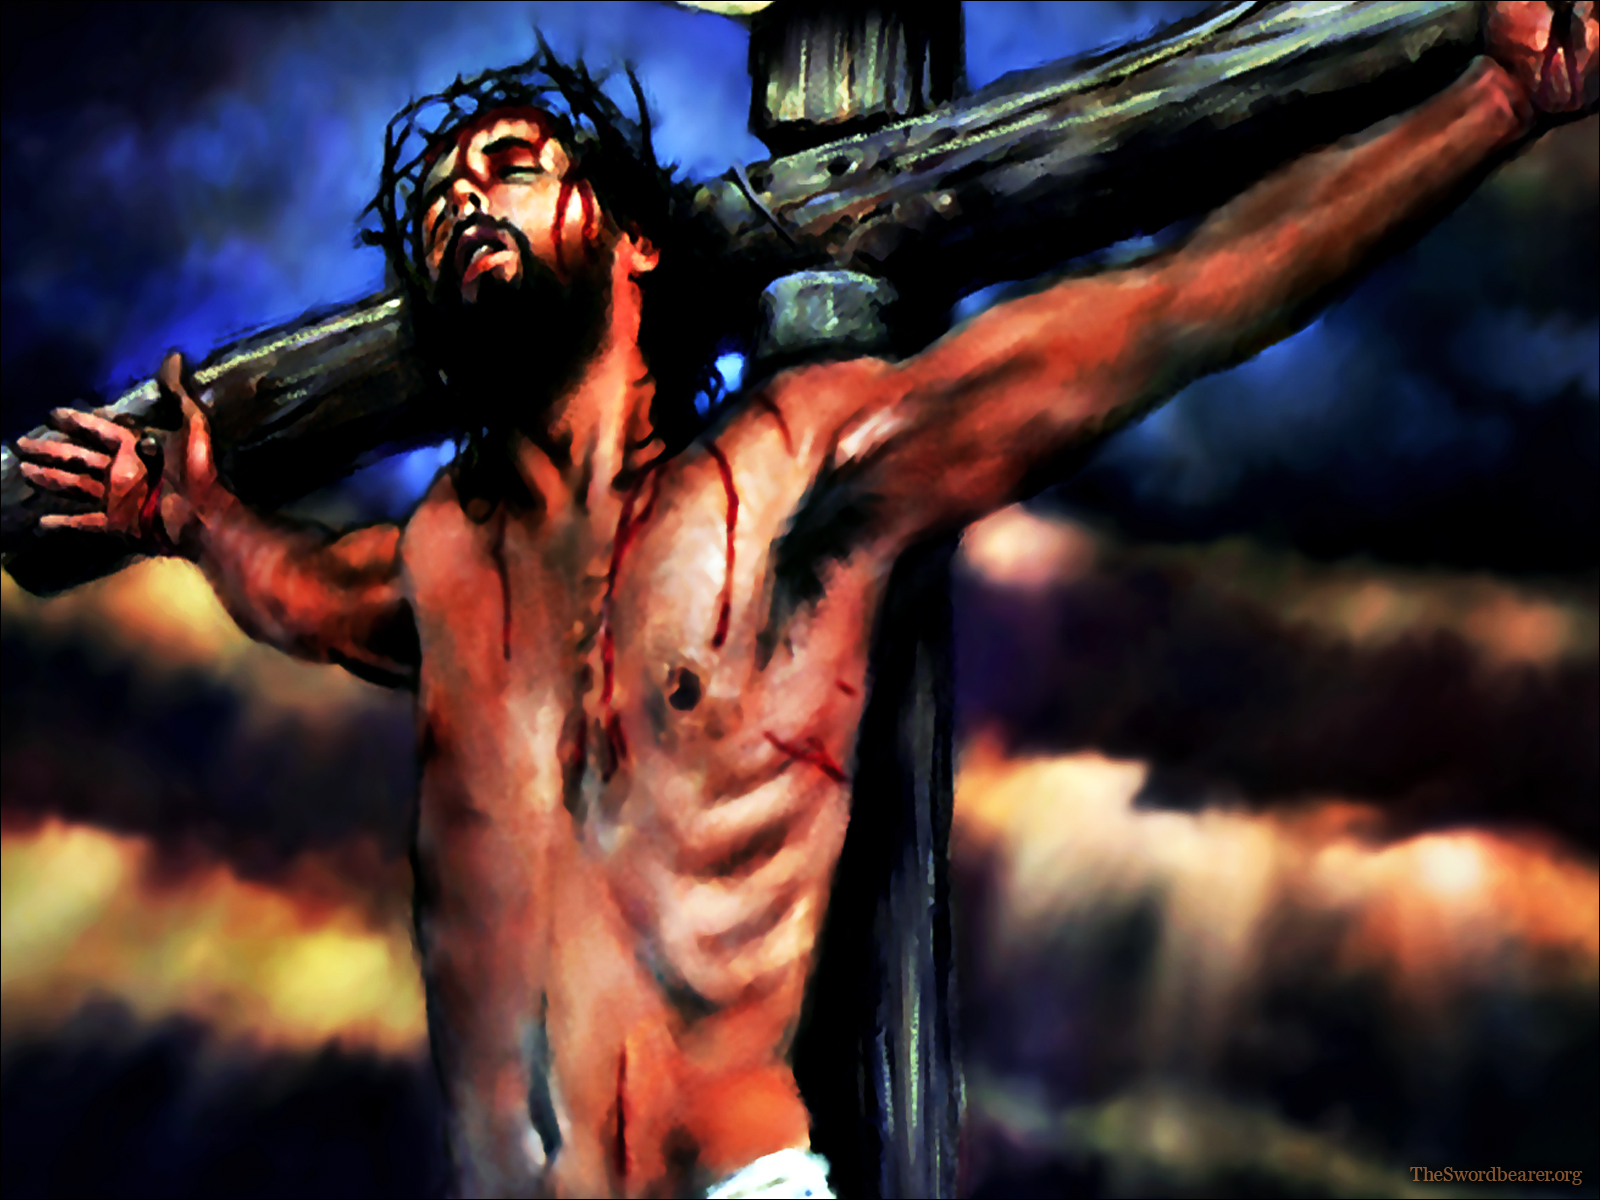 Jesus Crucifixion Wallpaper HD Images Jesus Crucifixion 1600x1200